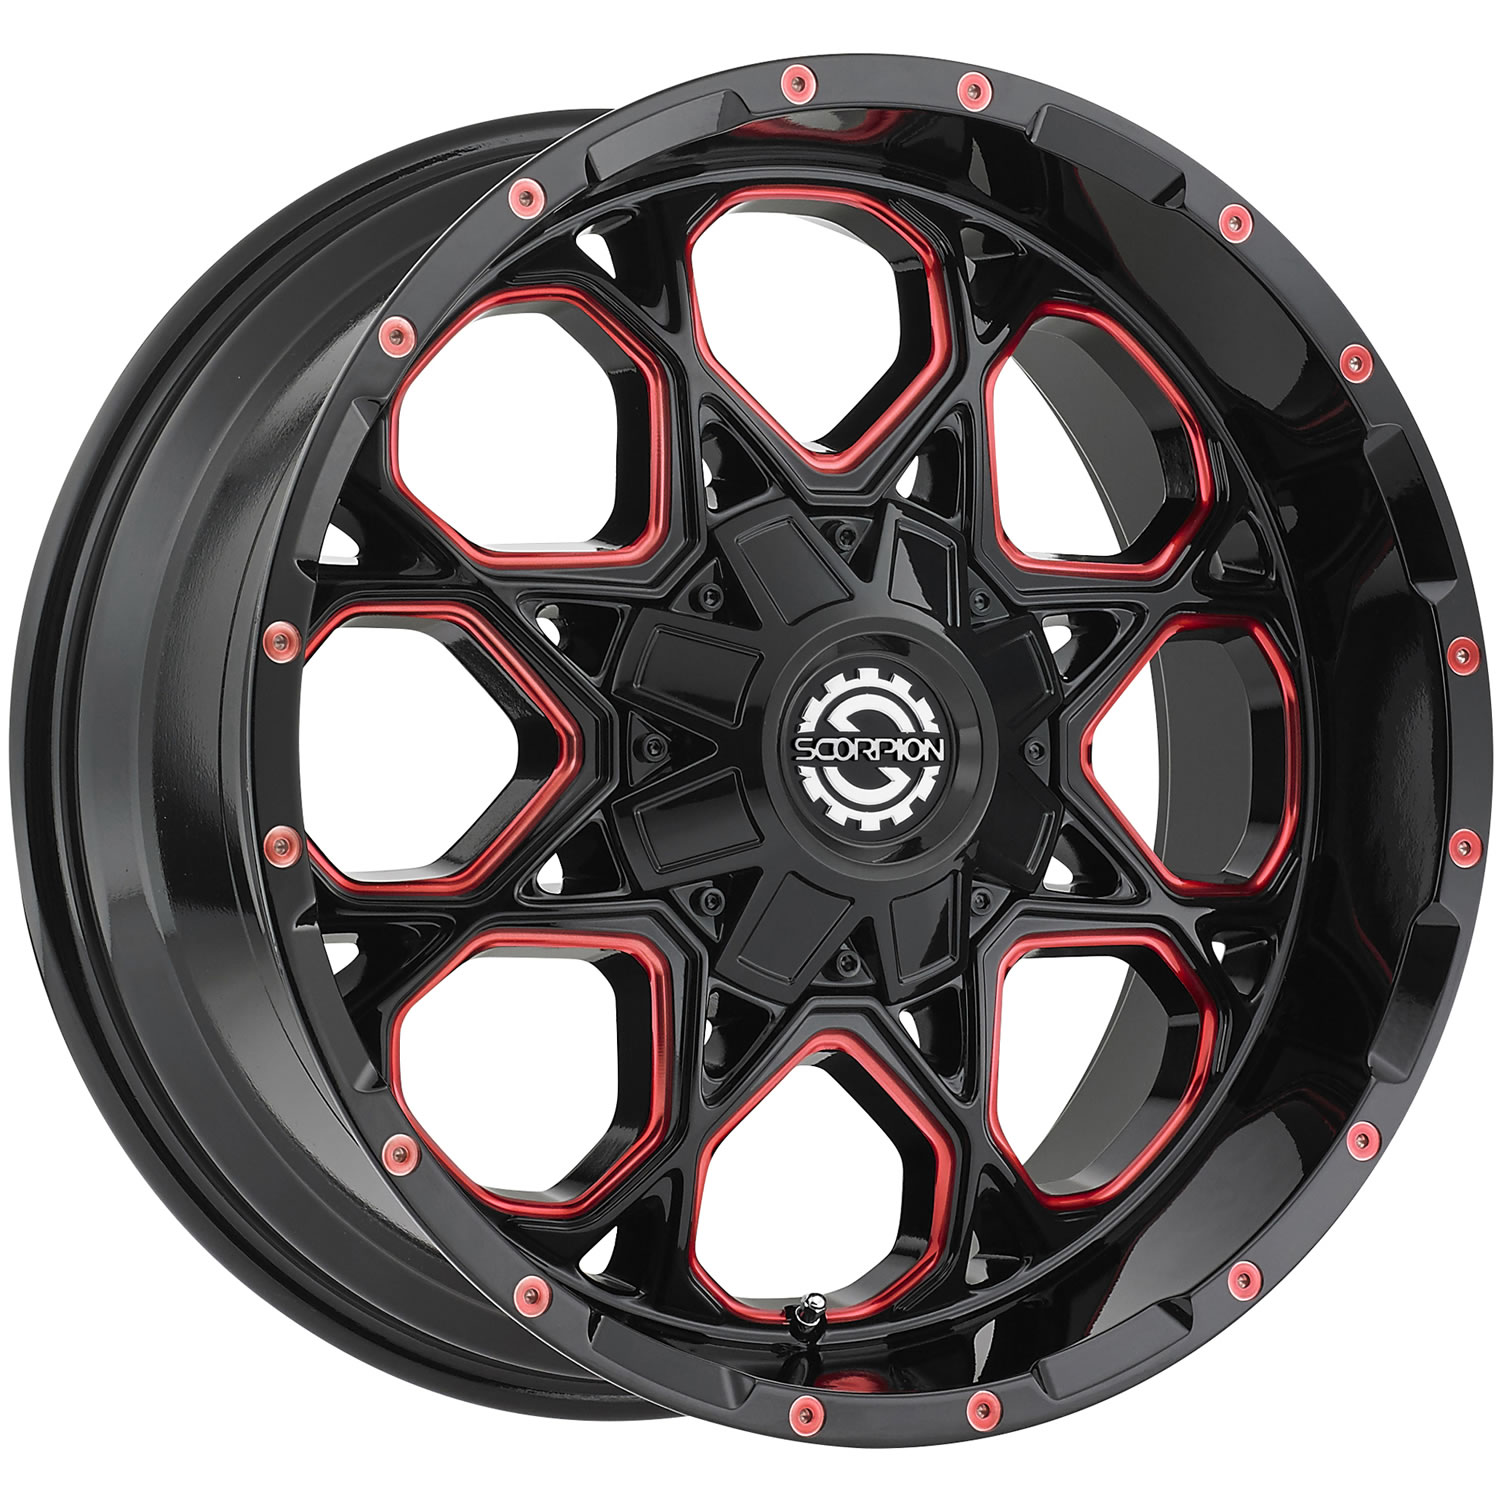 Scorpion Sc10 20x9 12 Custom Wheels